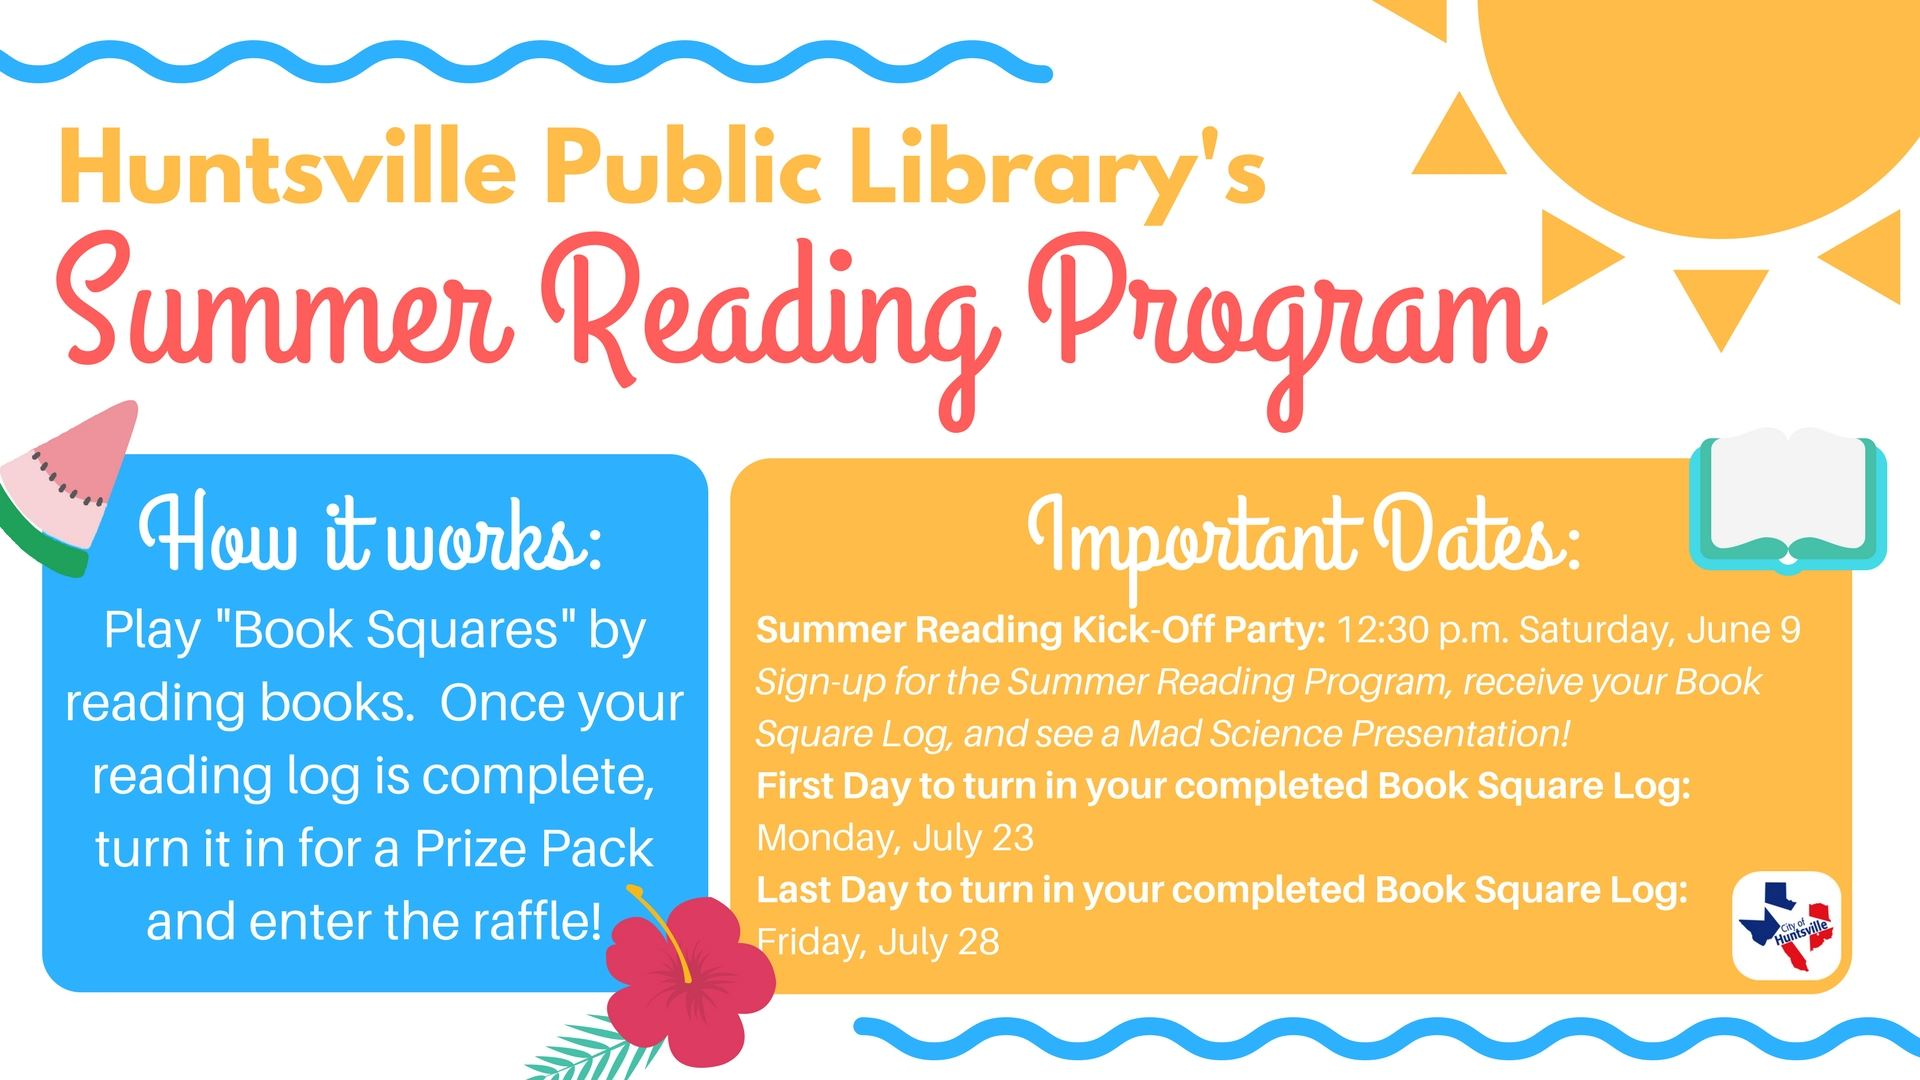 Summer Reading Program Detailed general